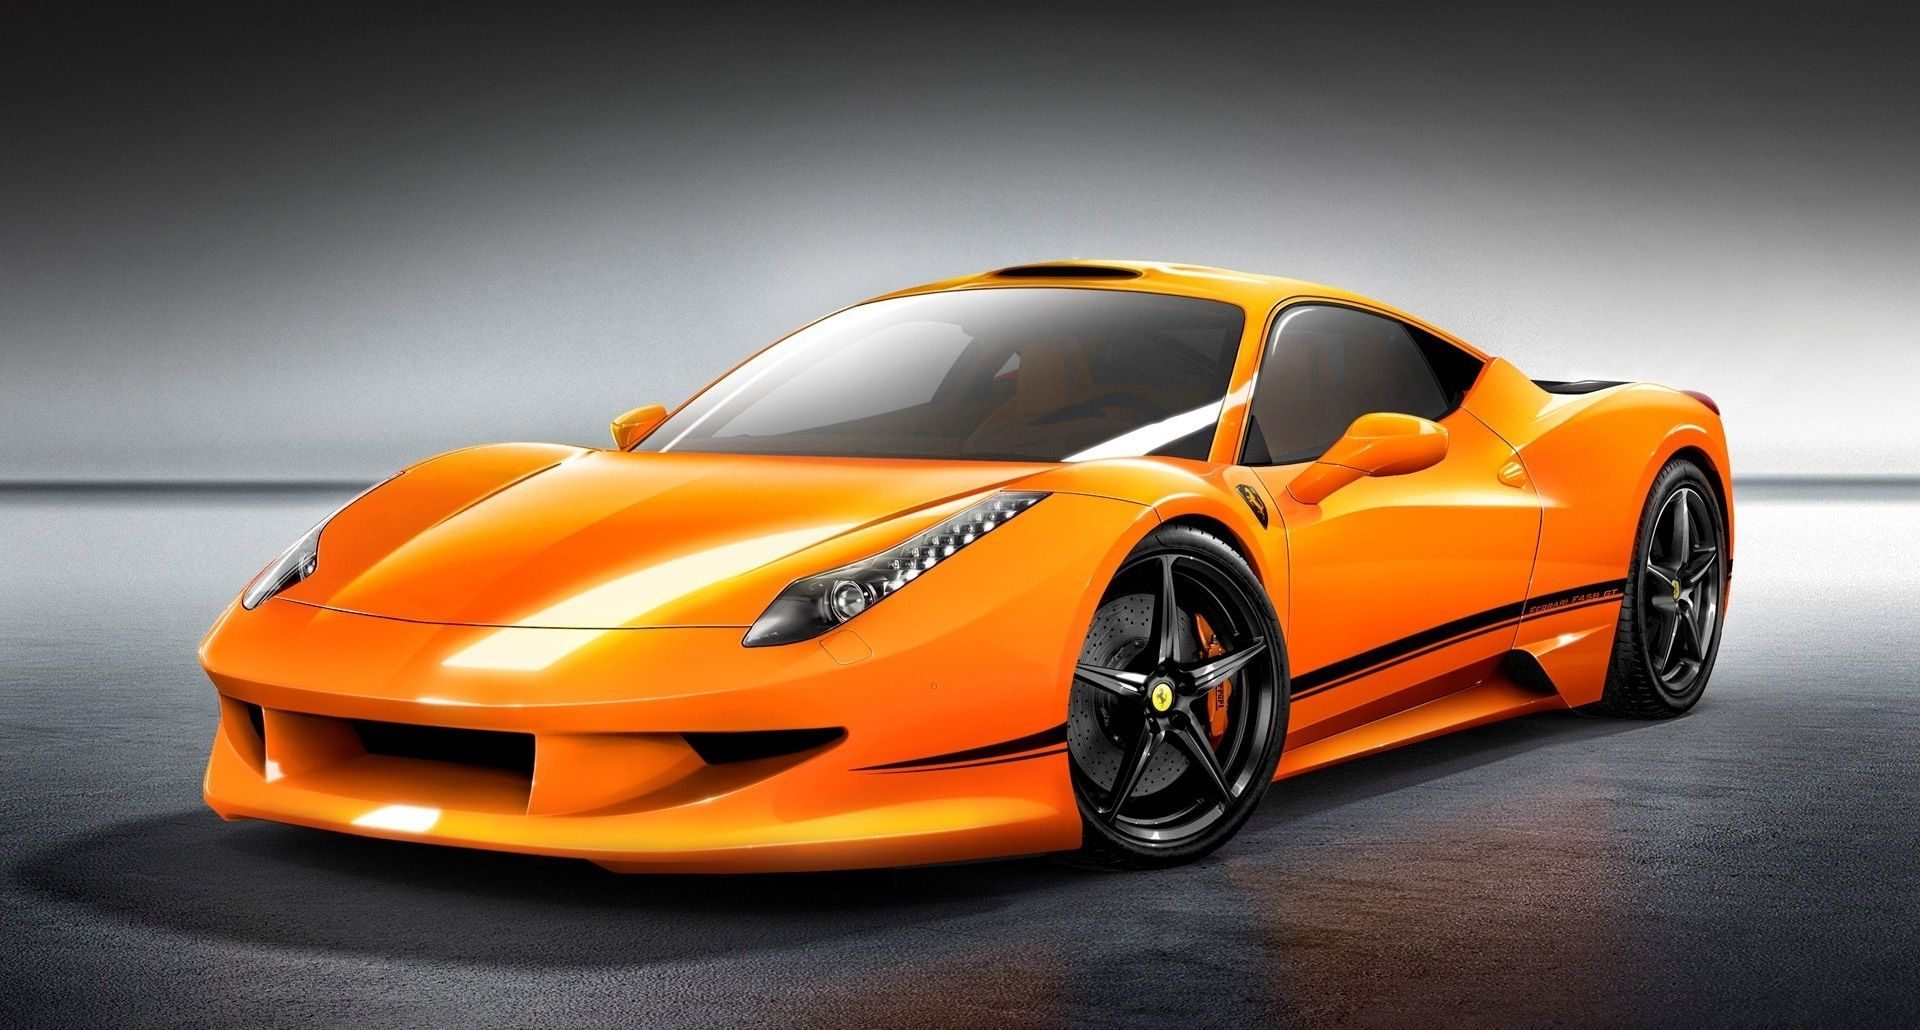 Gorgeous Orange Ferrari